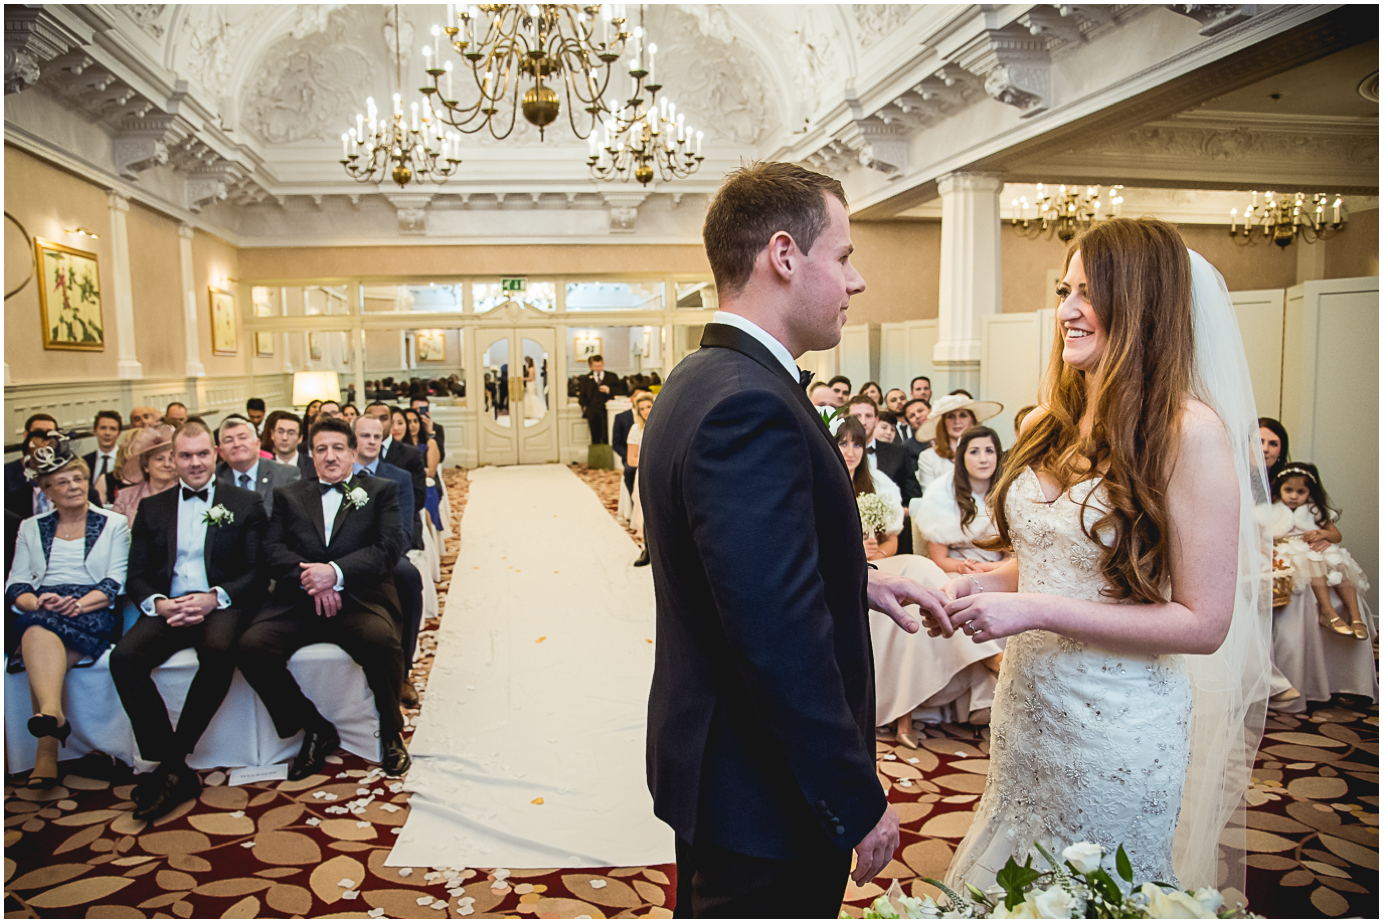 35 - Esmat and Angus - St. Ermin's Hotel London wedding photographer